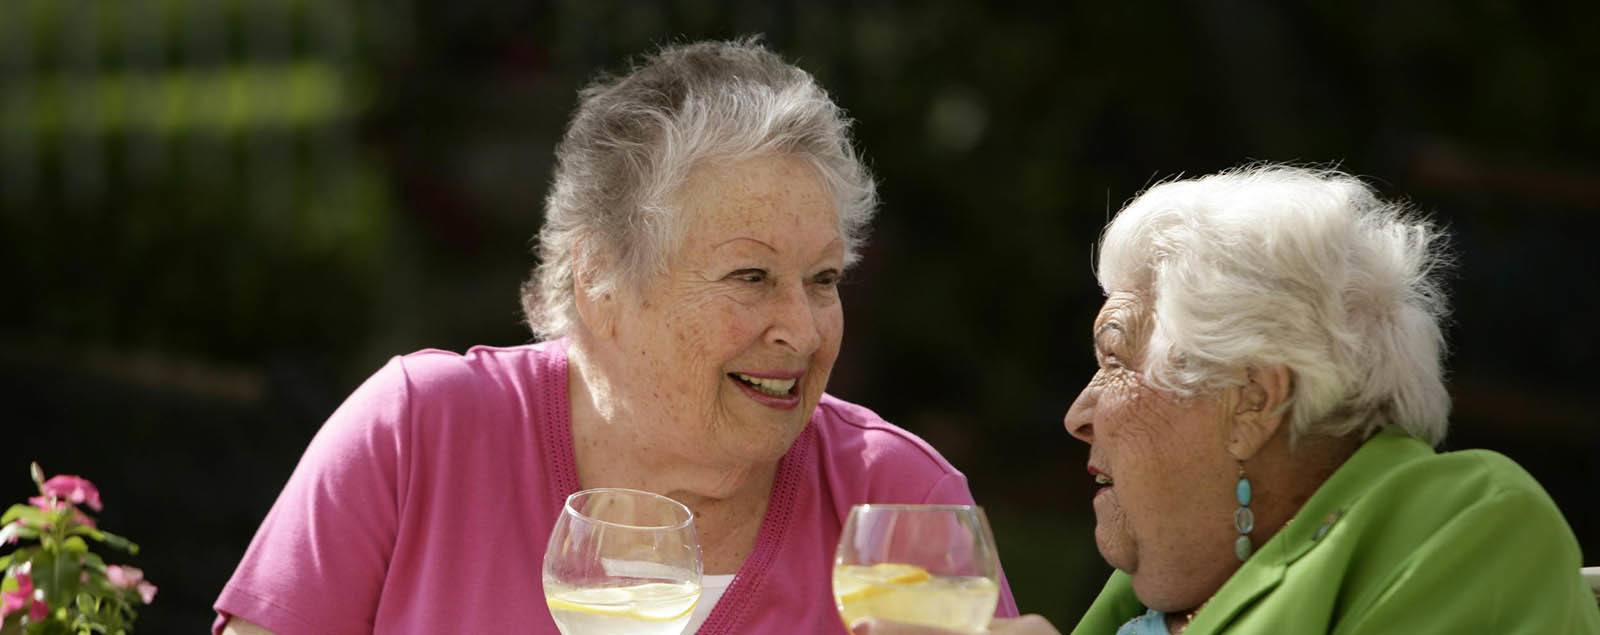 Reviews for senior living in Coral Springs